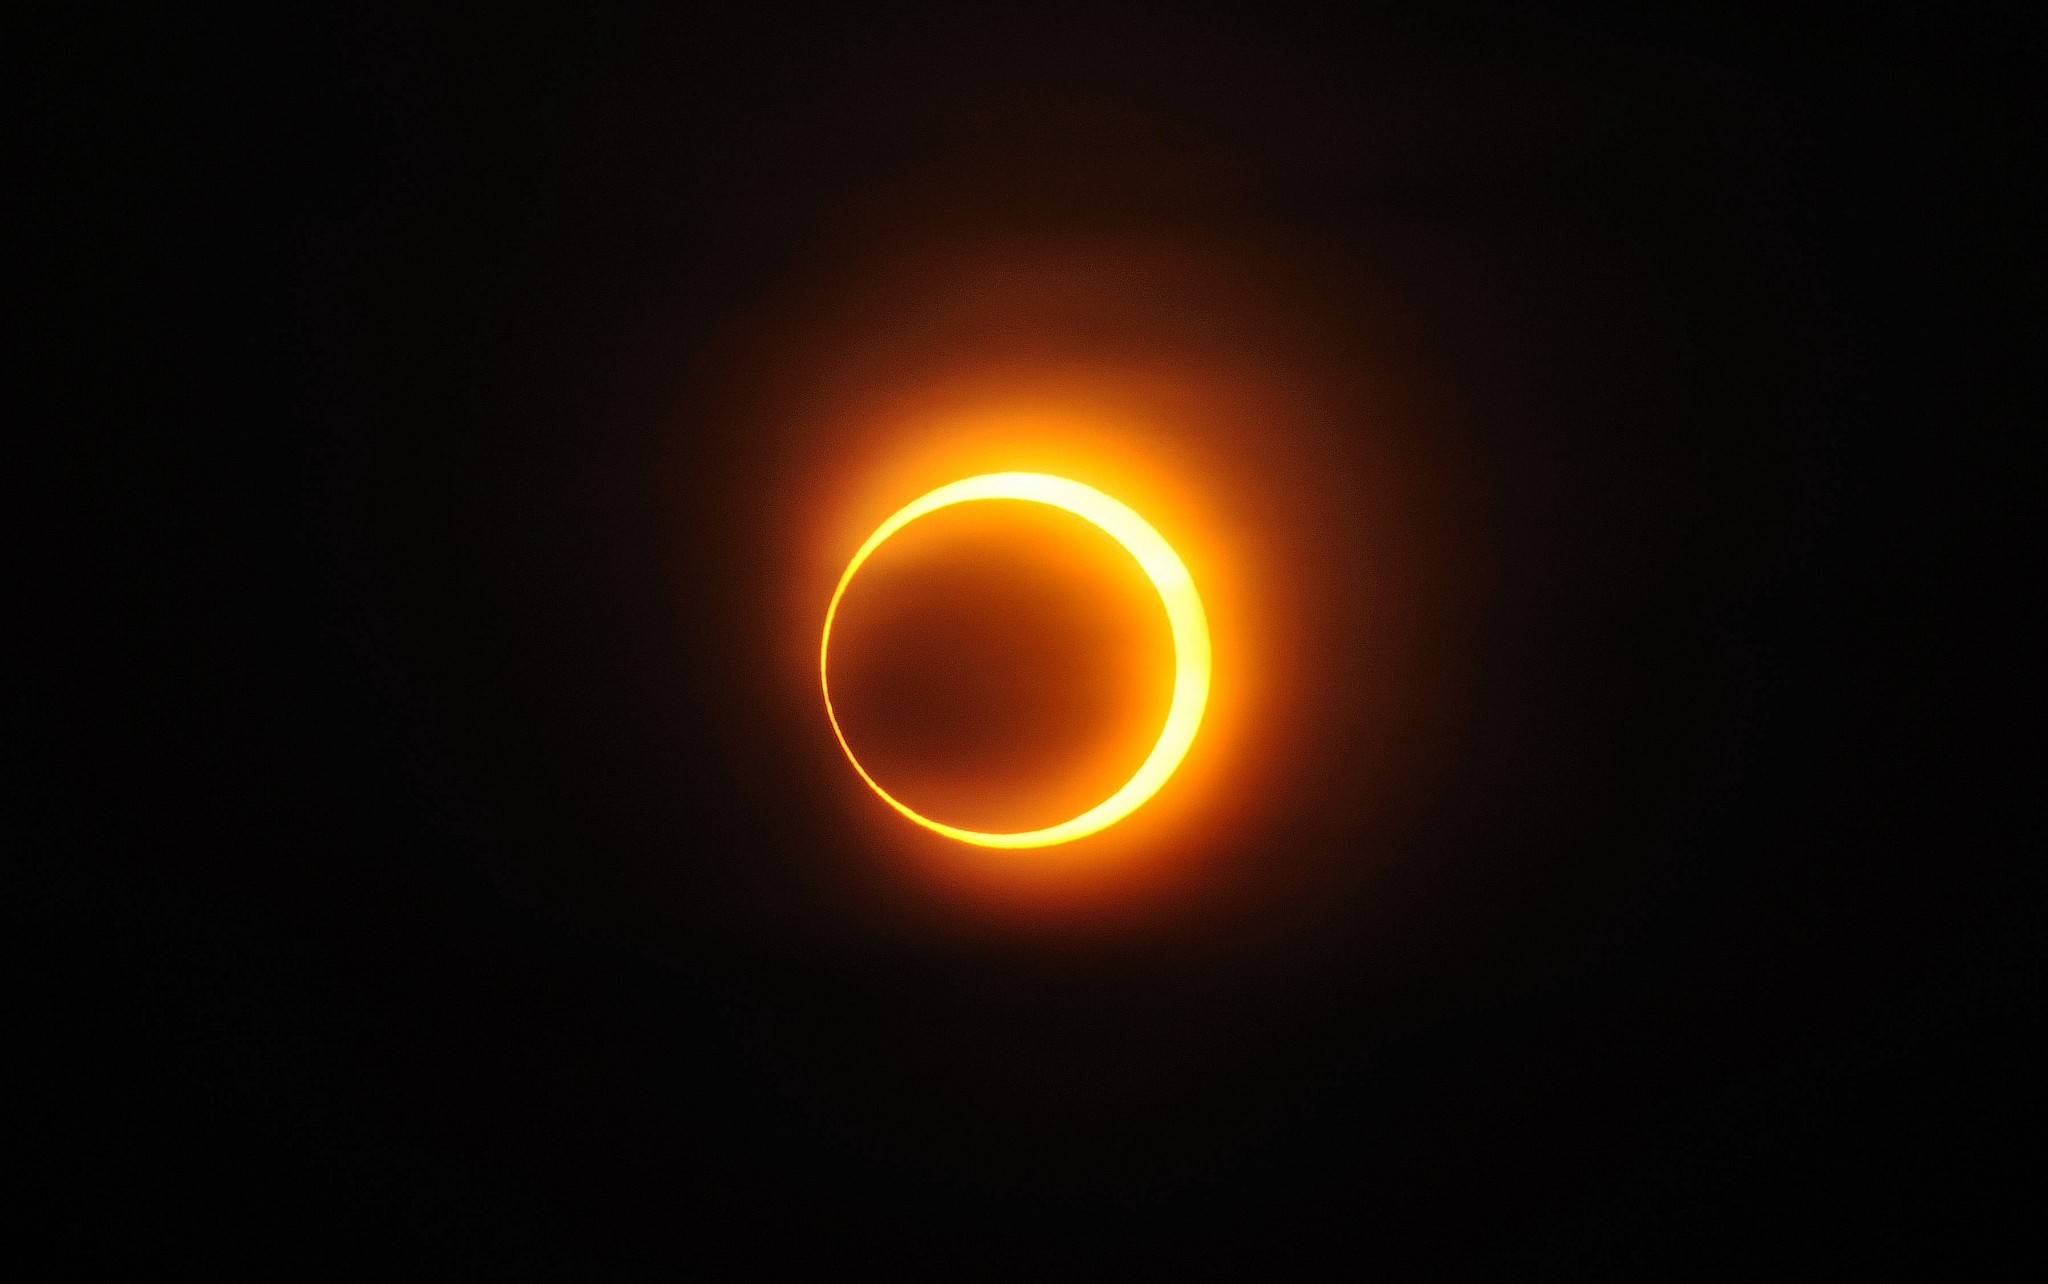 Solar annular eclipse of Janua